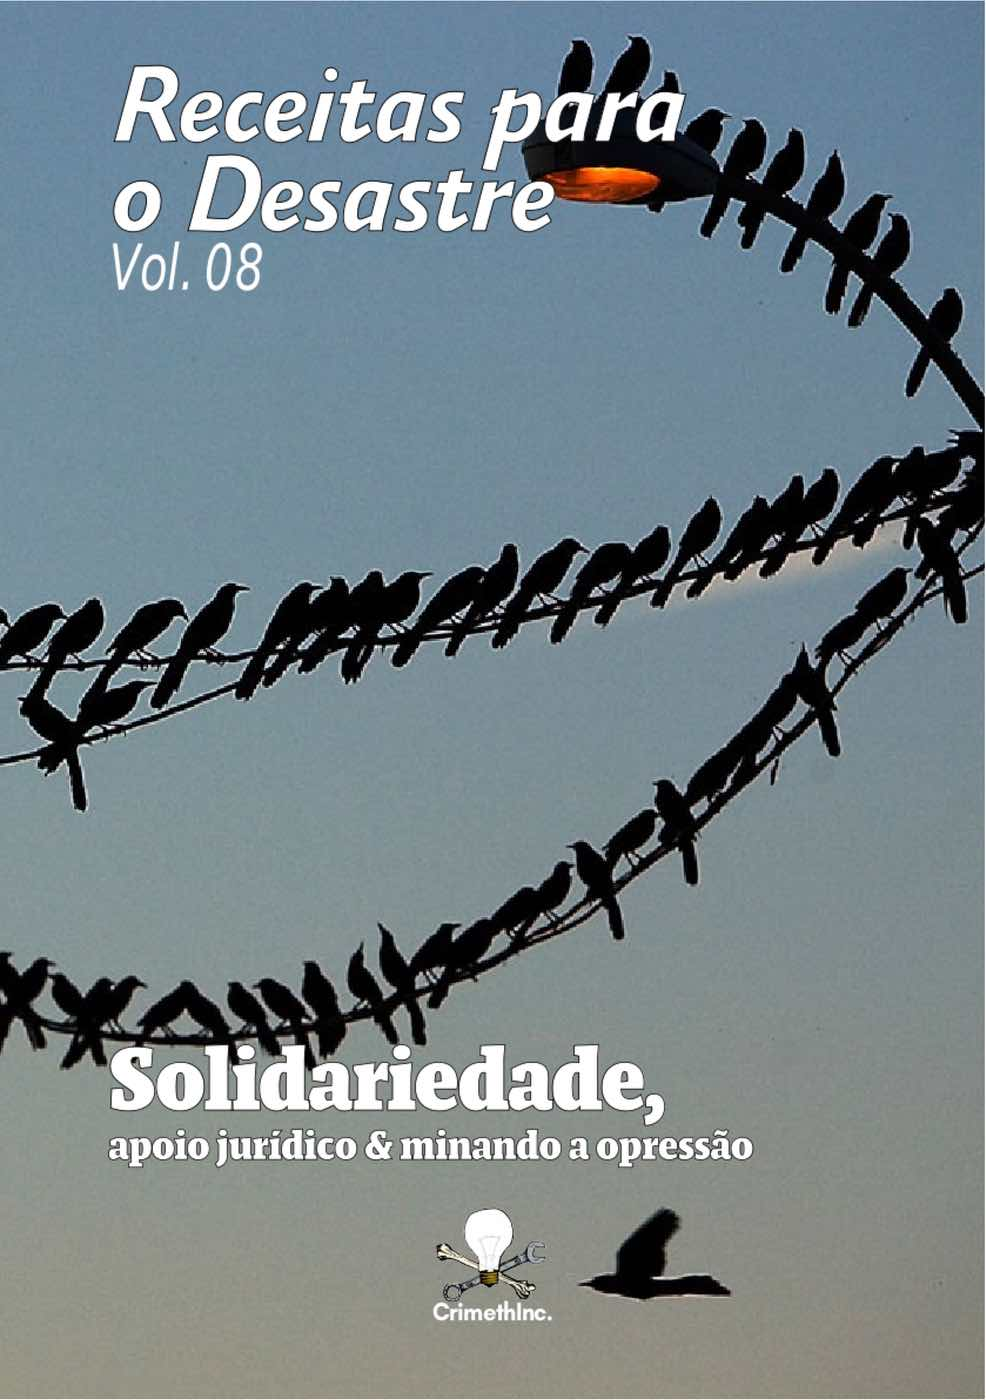 Photo of 'Receitas para o Desastre Vol. 08 (Portugues Brasileiro)' front cover